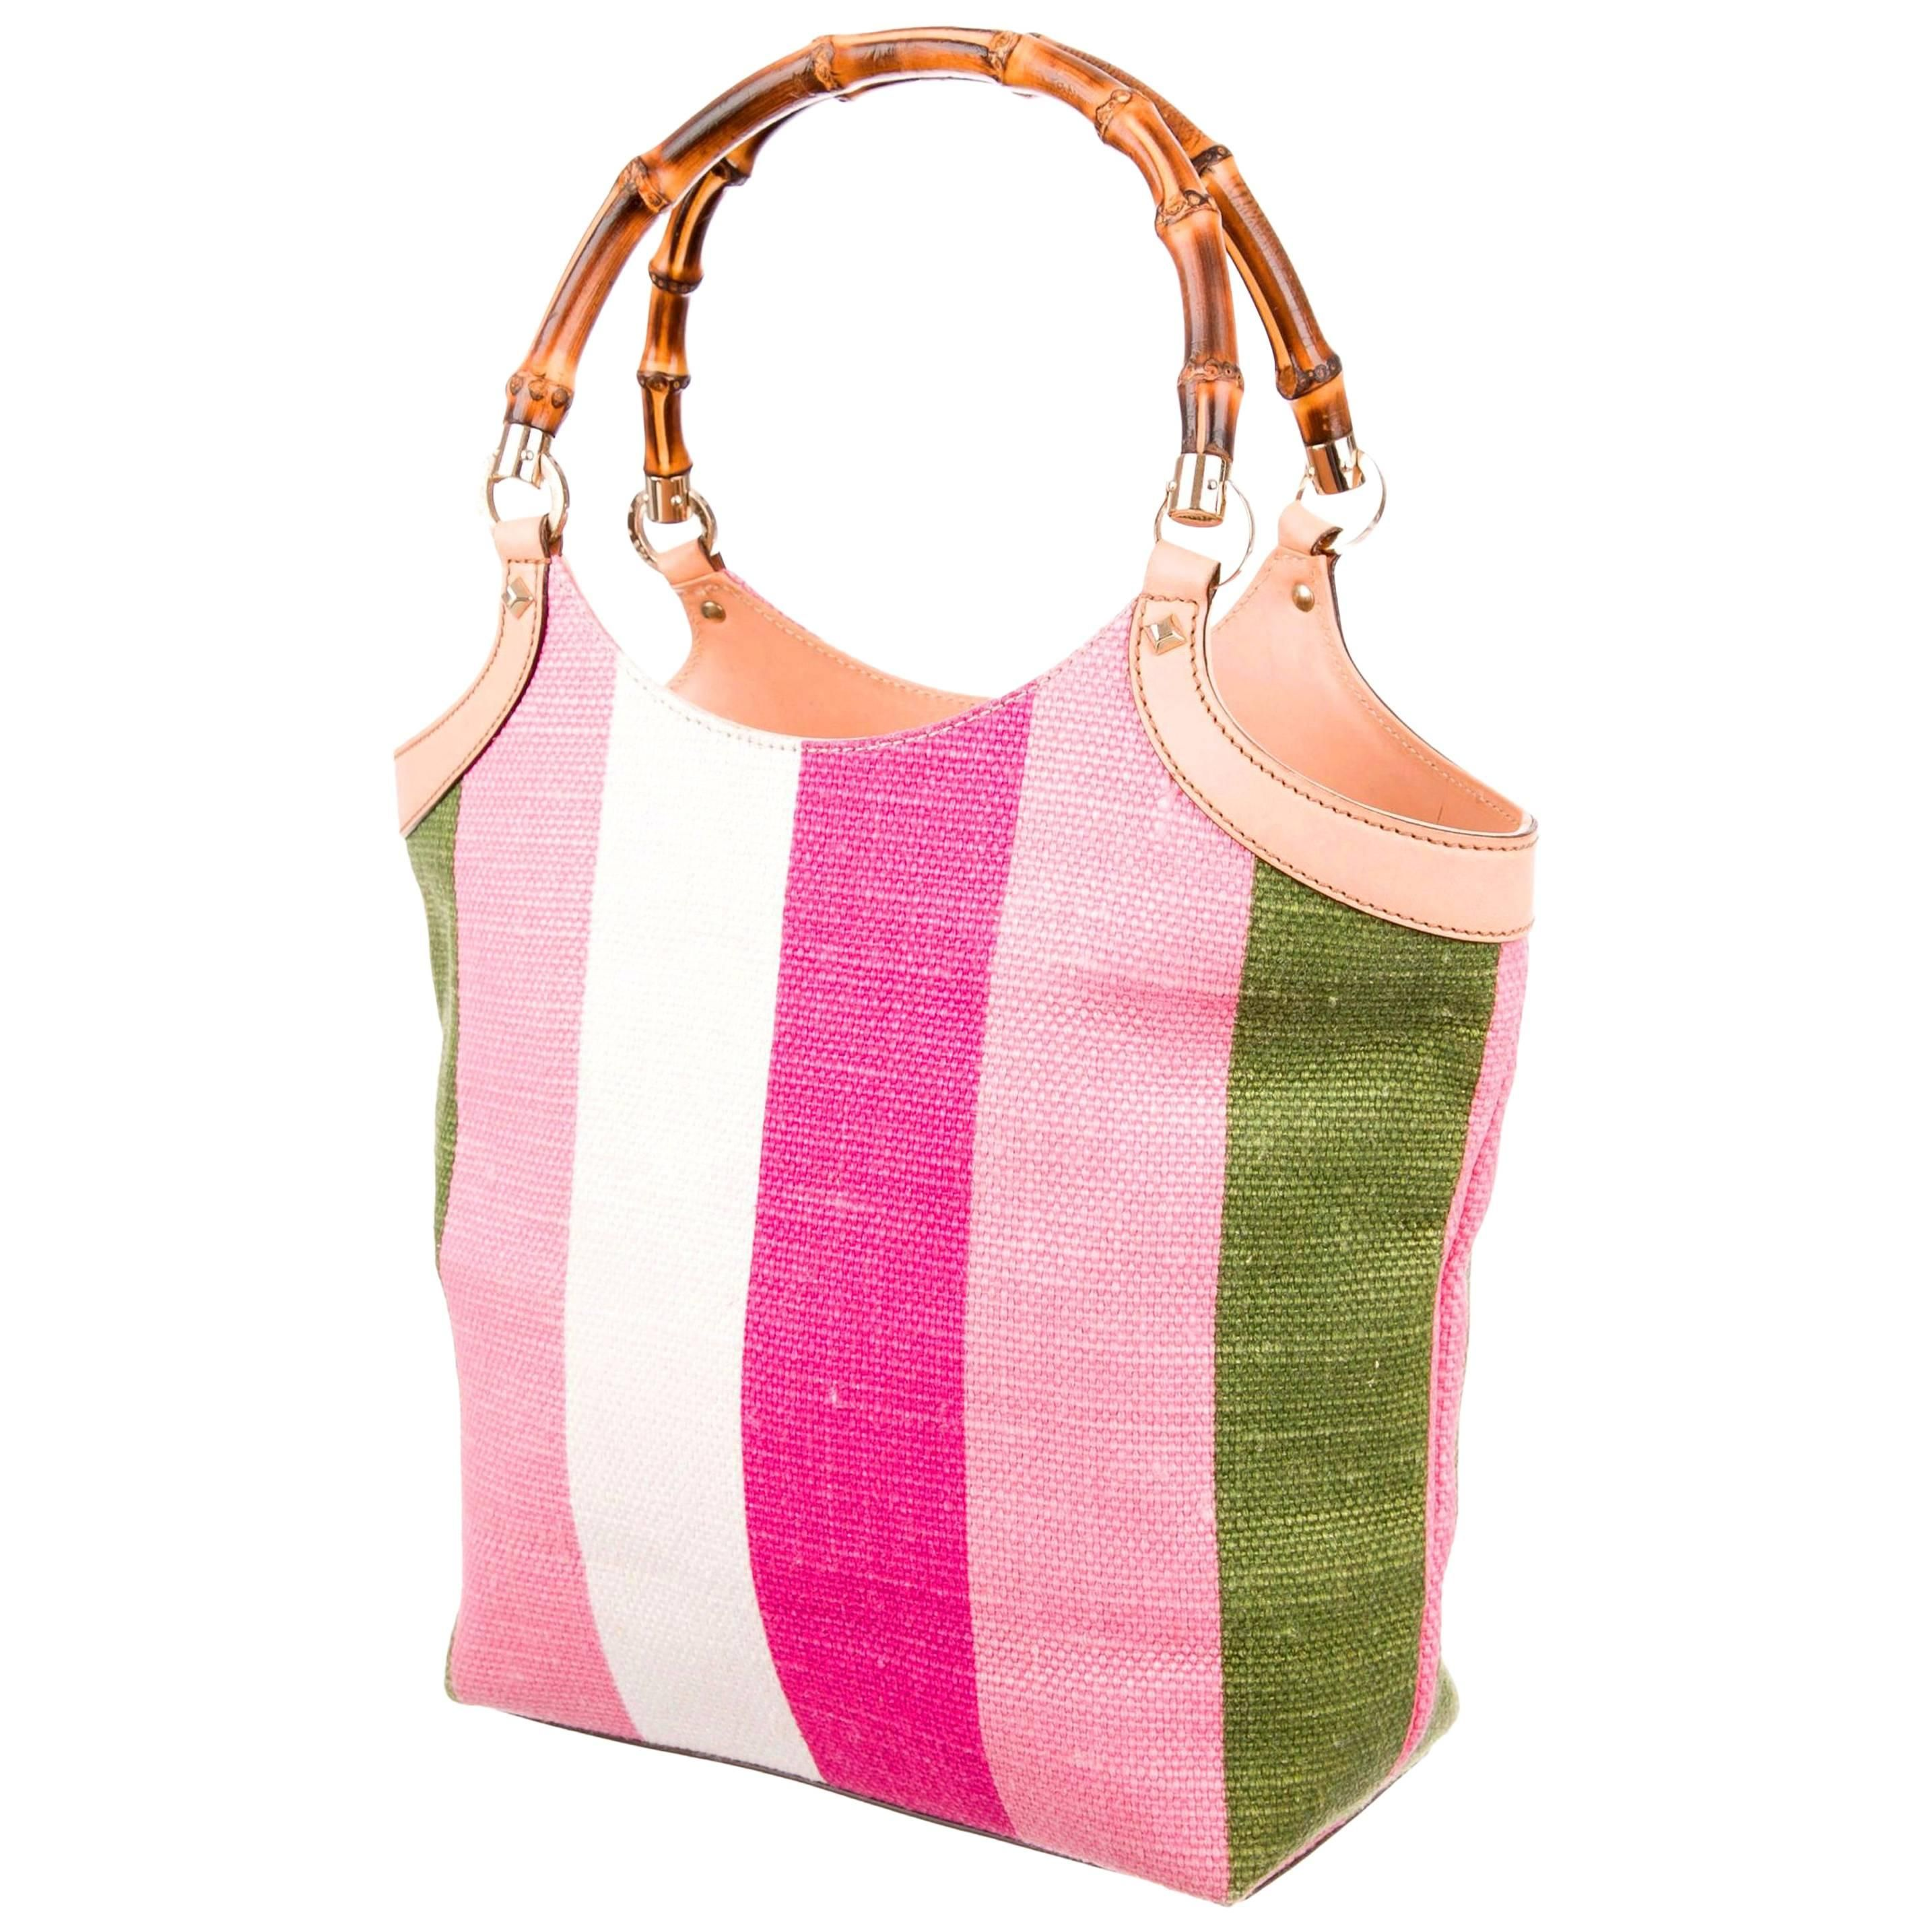 1eeb7de6d9ef Gucci Striped Baiadera Canvas and Leather Bamboo Handbag Bag Tote For Sale  at 1stdibs